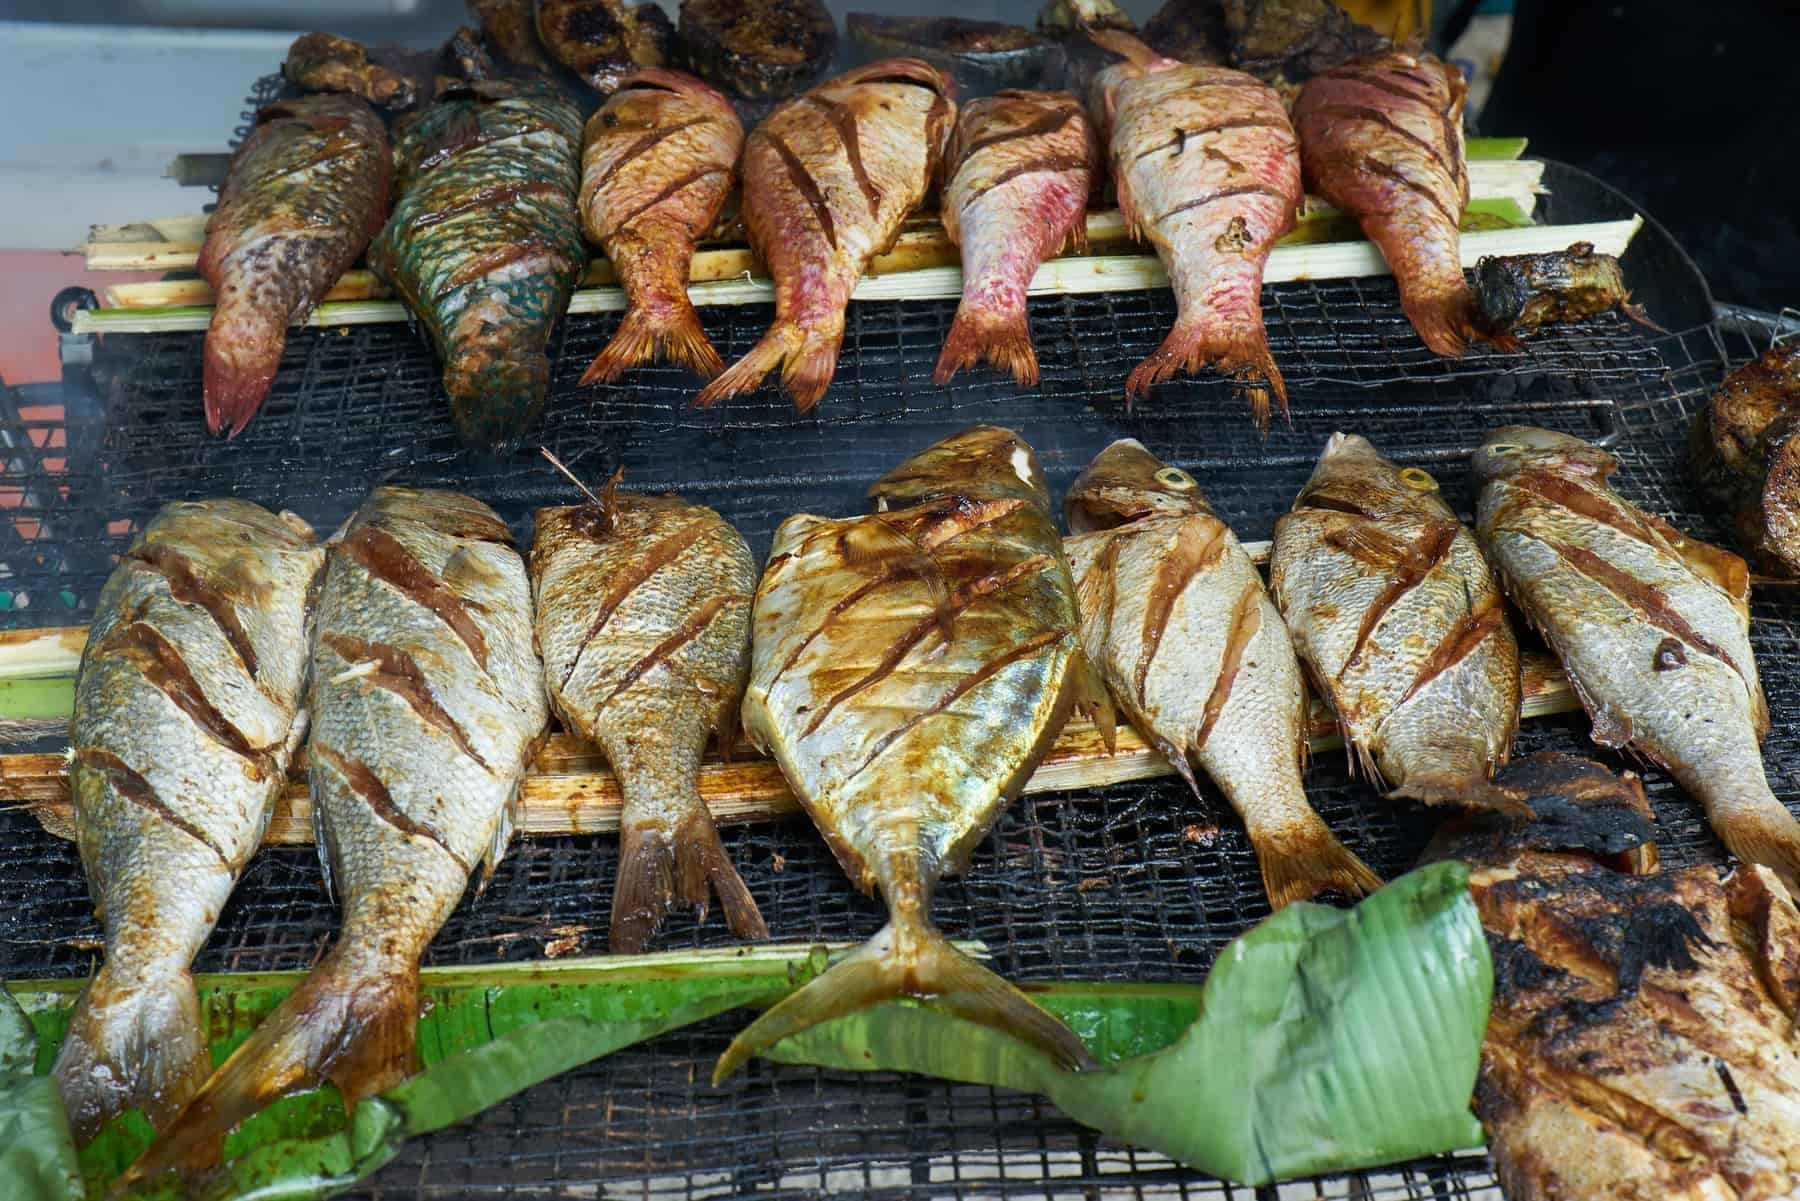 Grilled fresh seafood in local market, Mahé - Seychelles Island